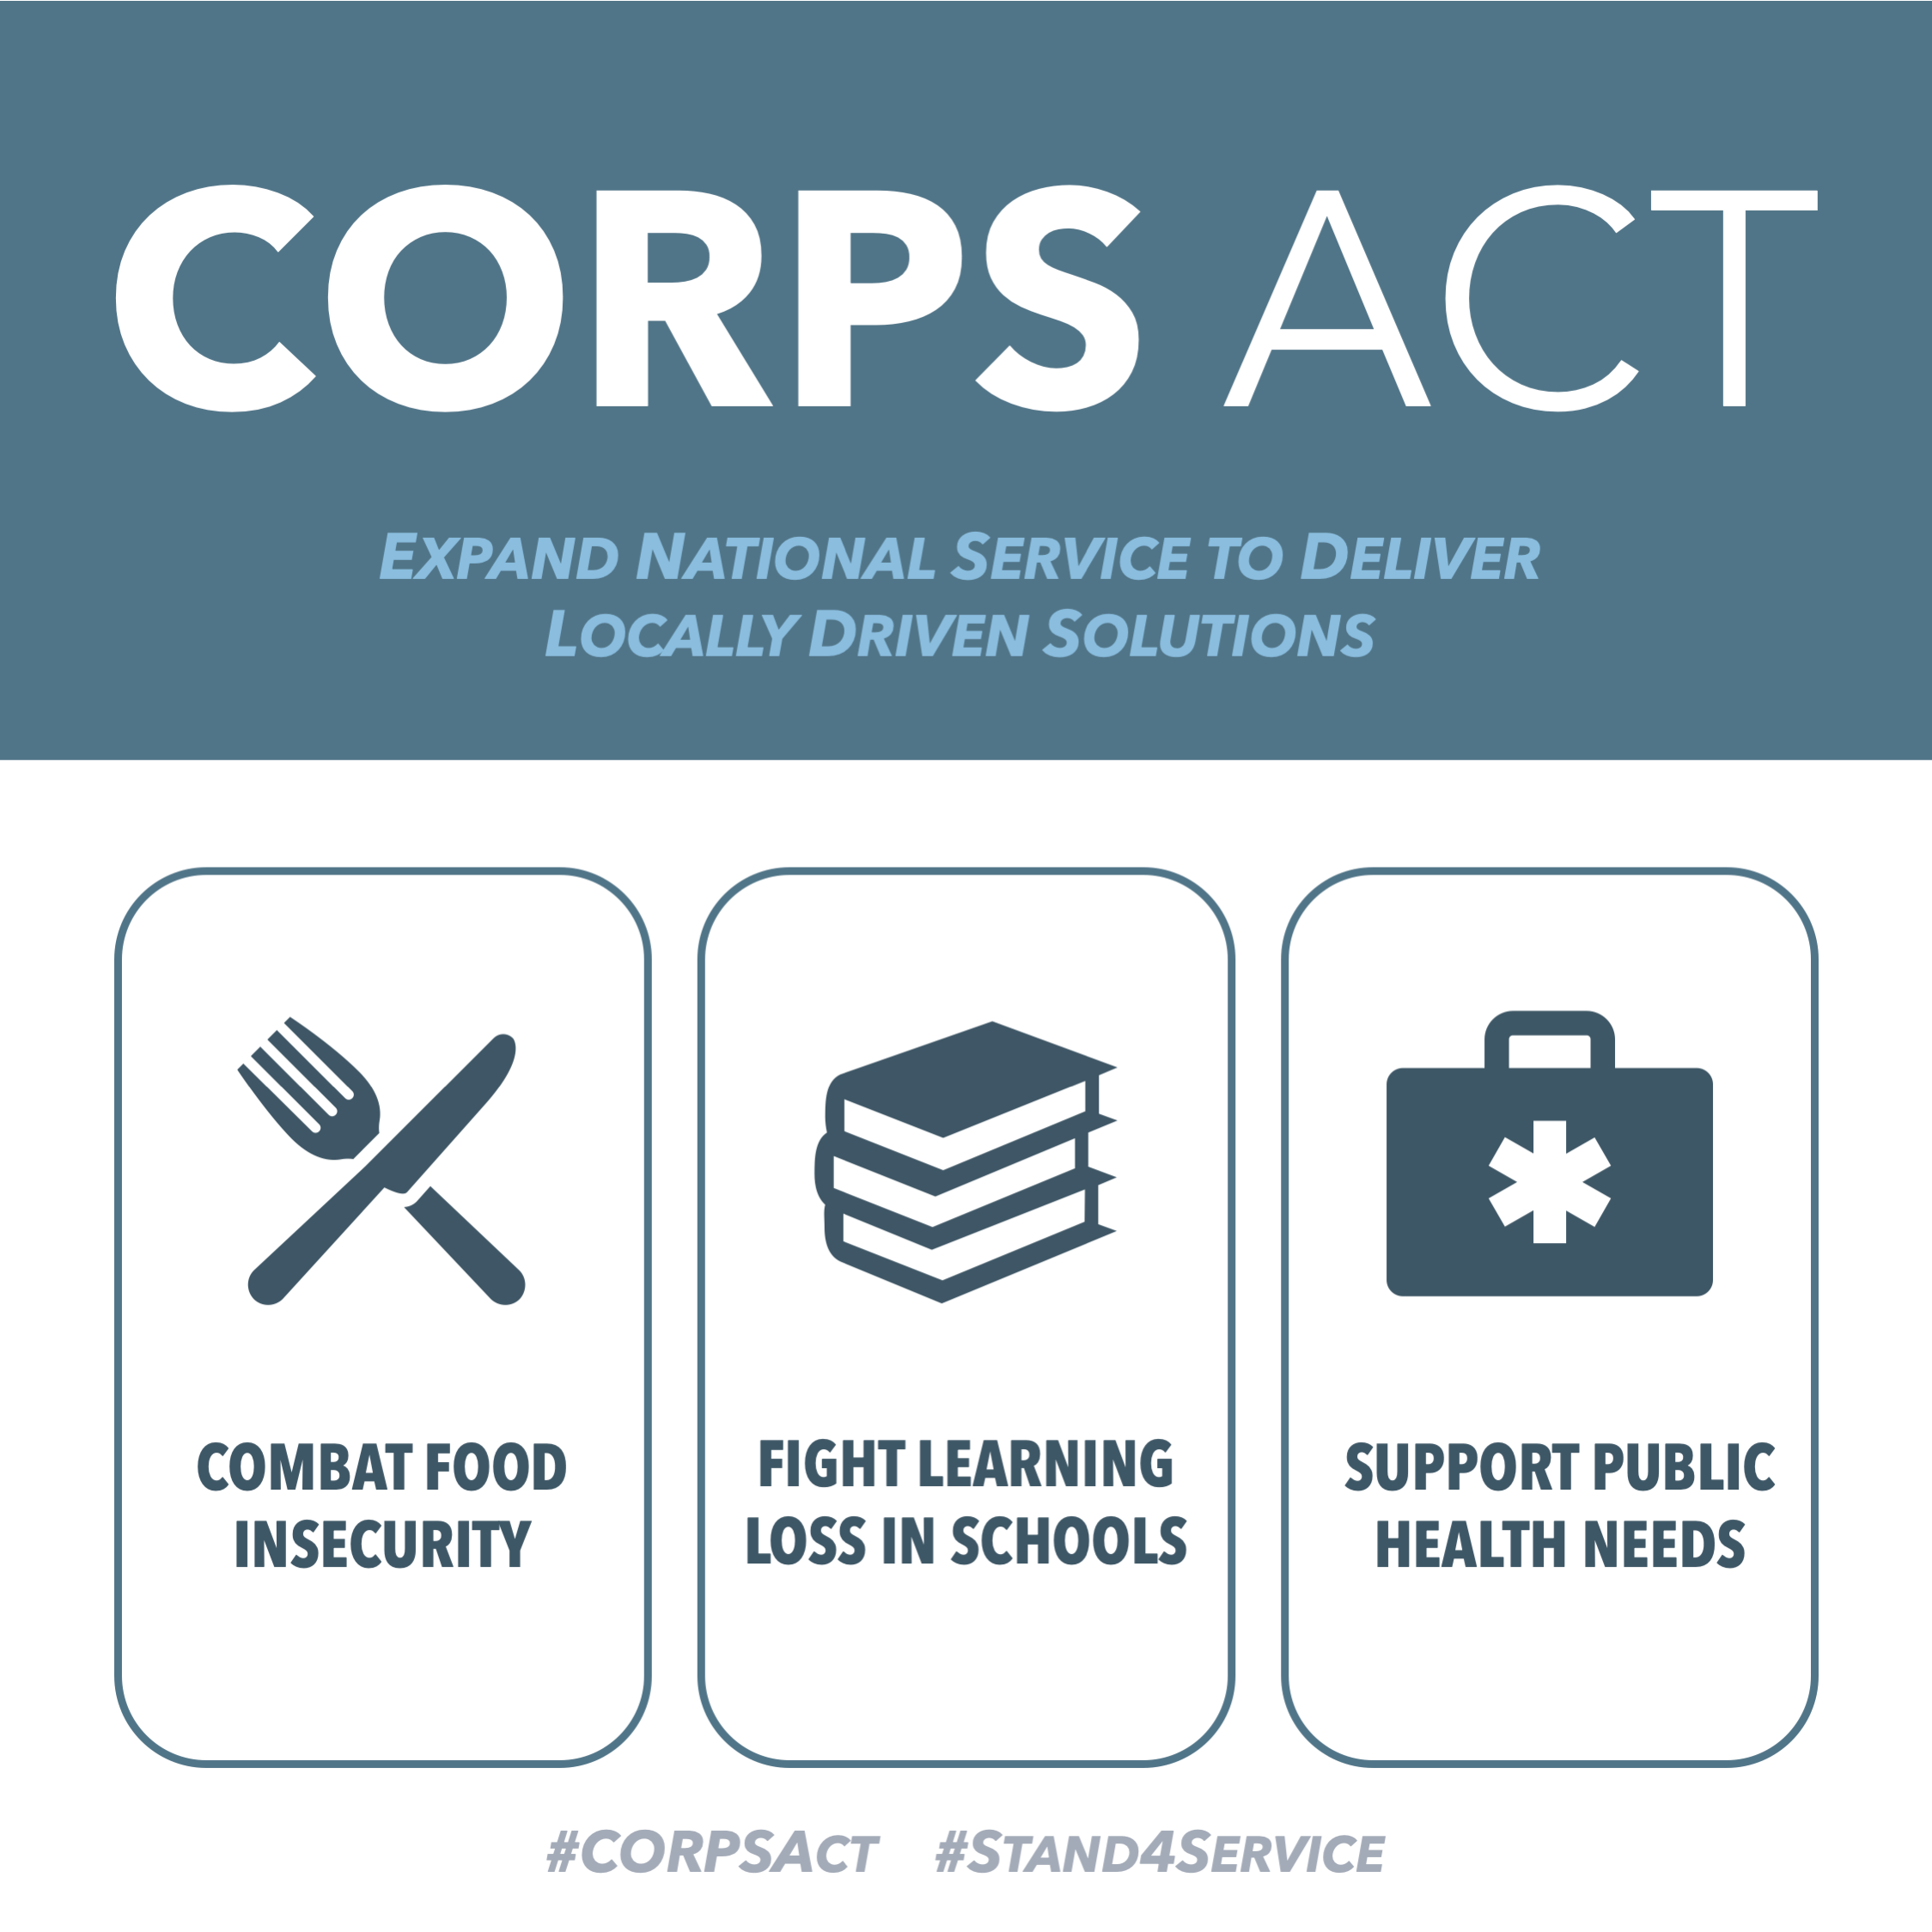 Corps Act